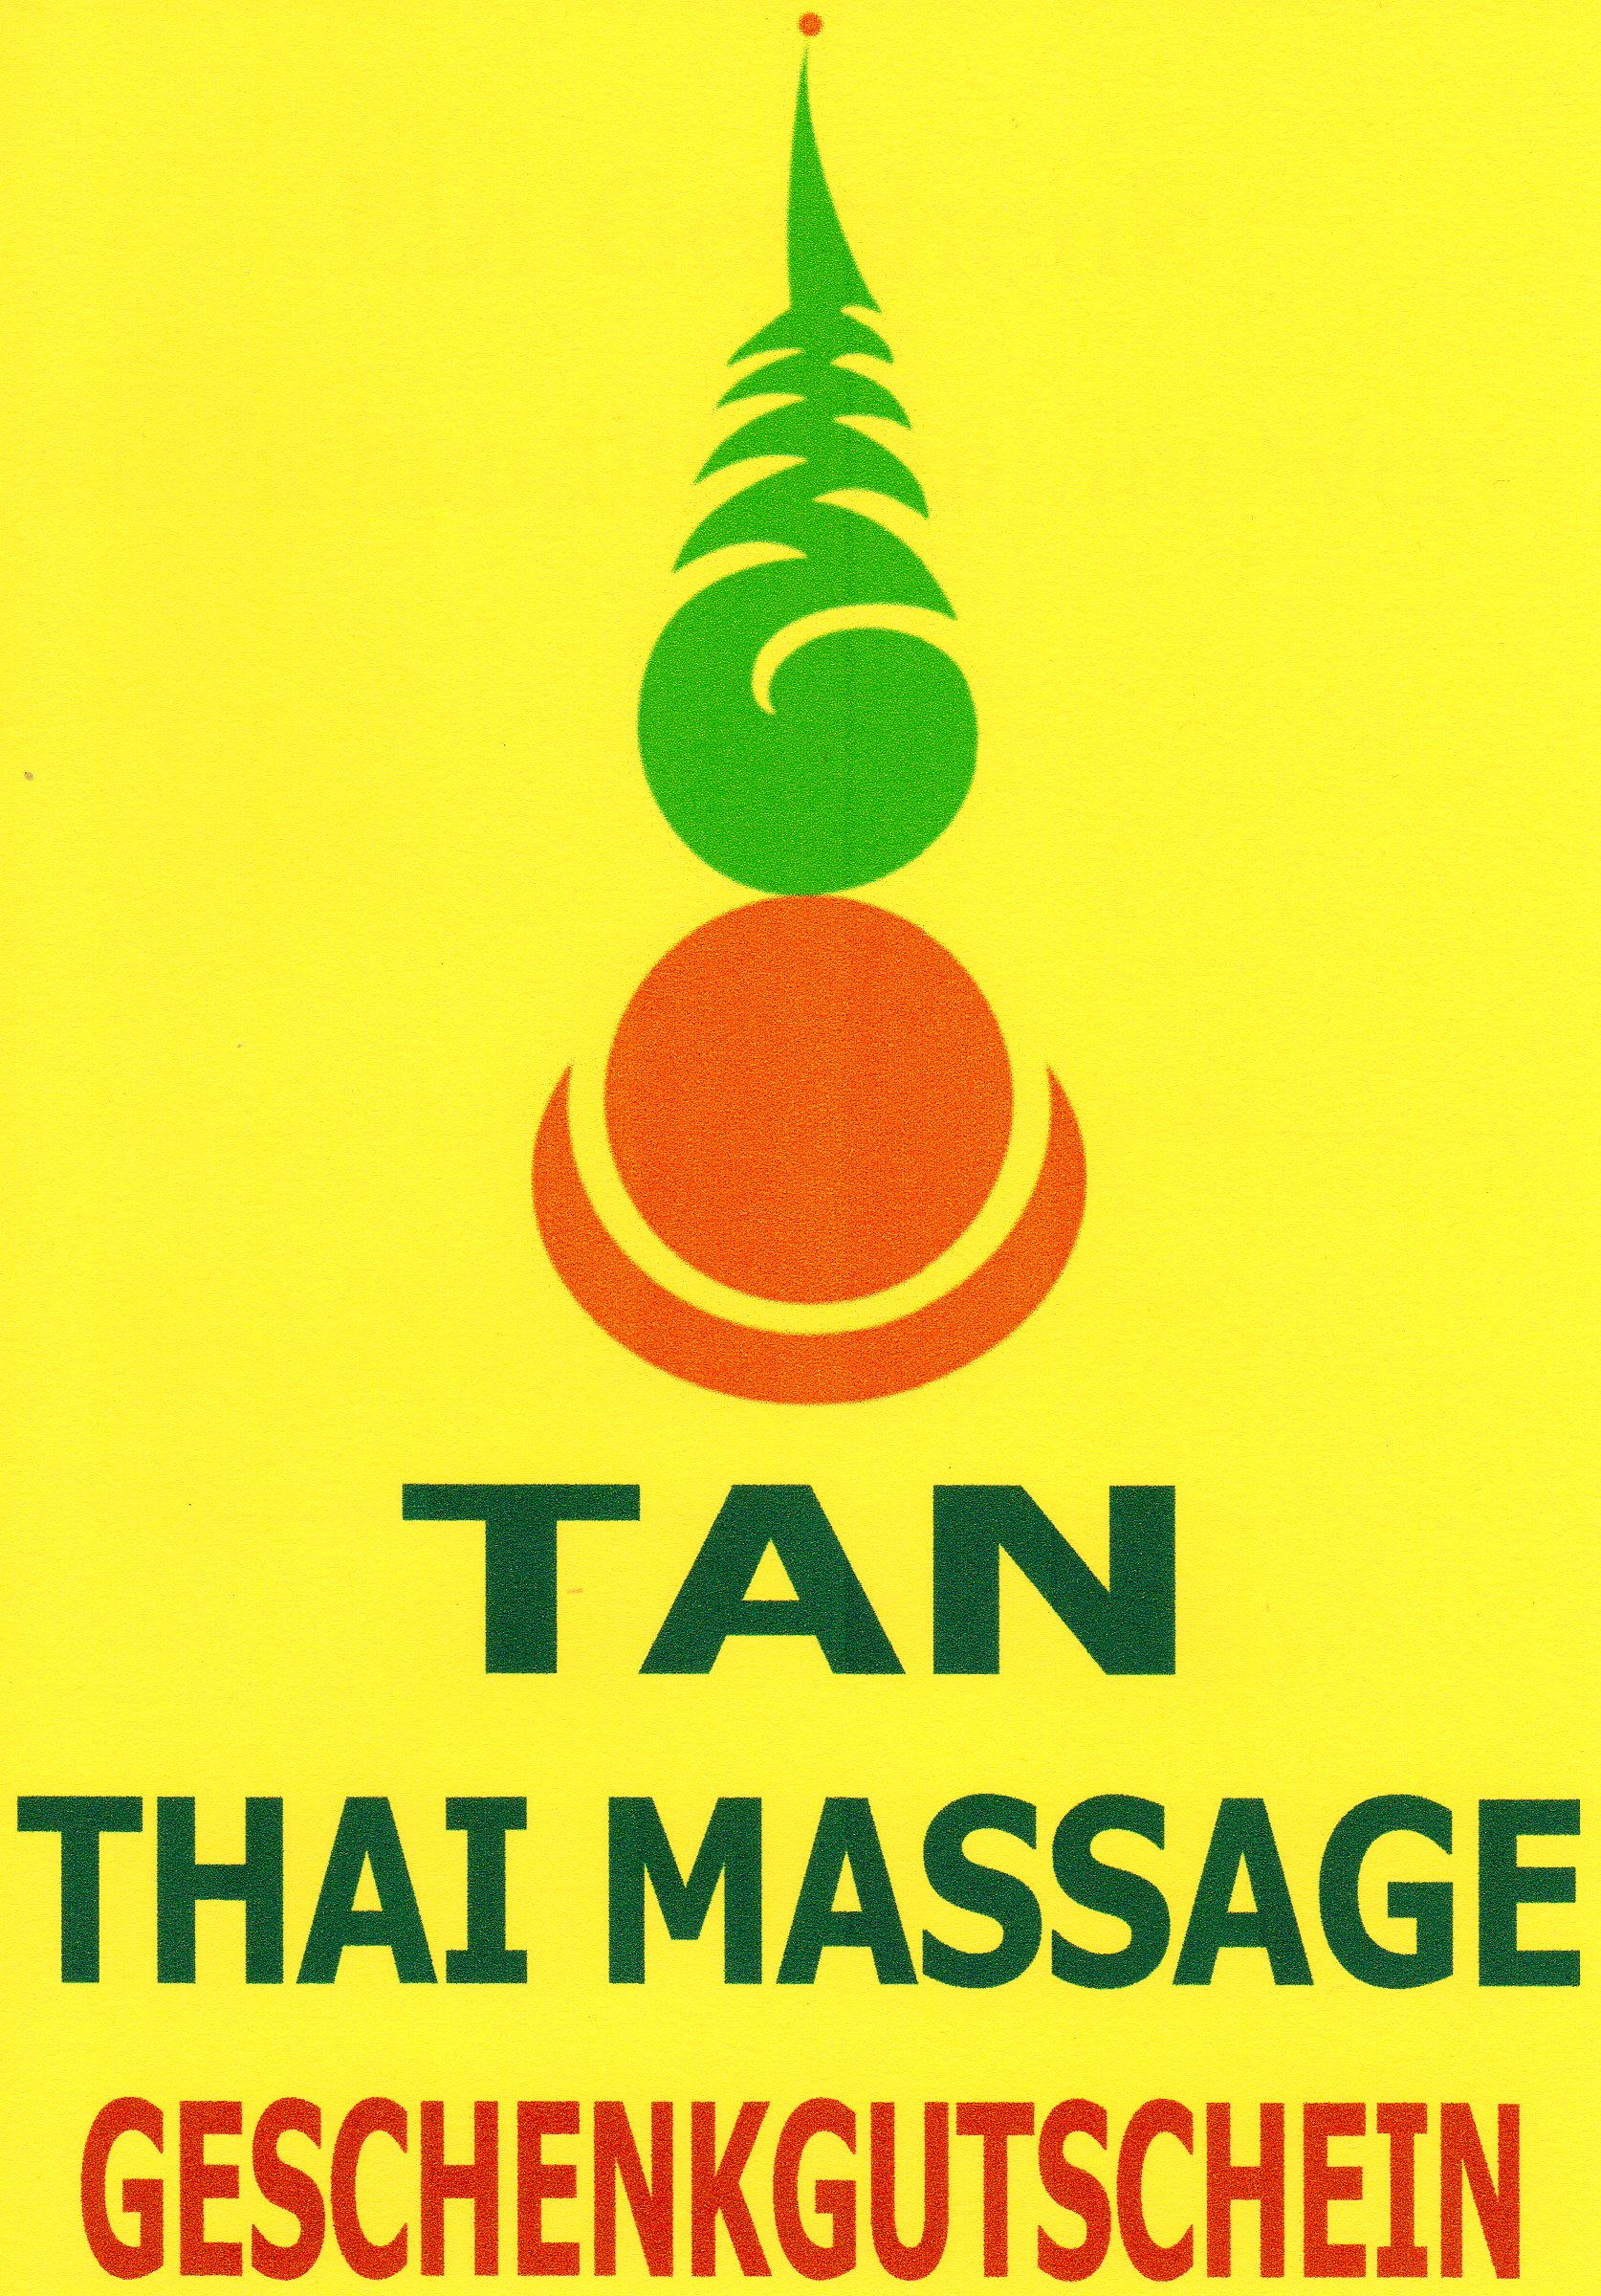 Tan Thaimassage